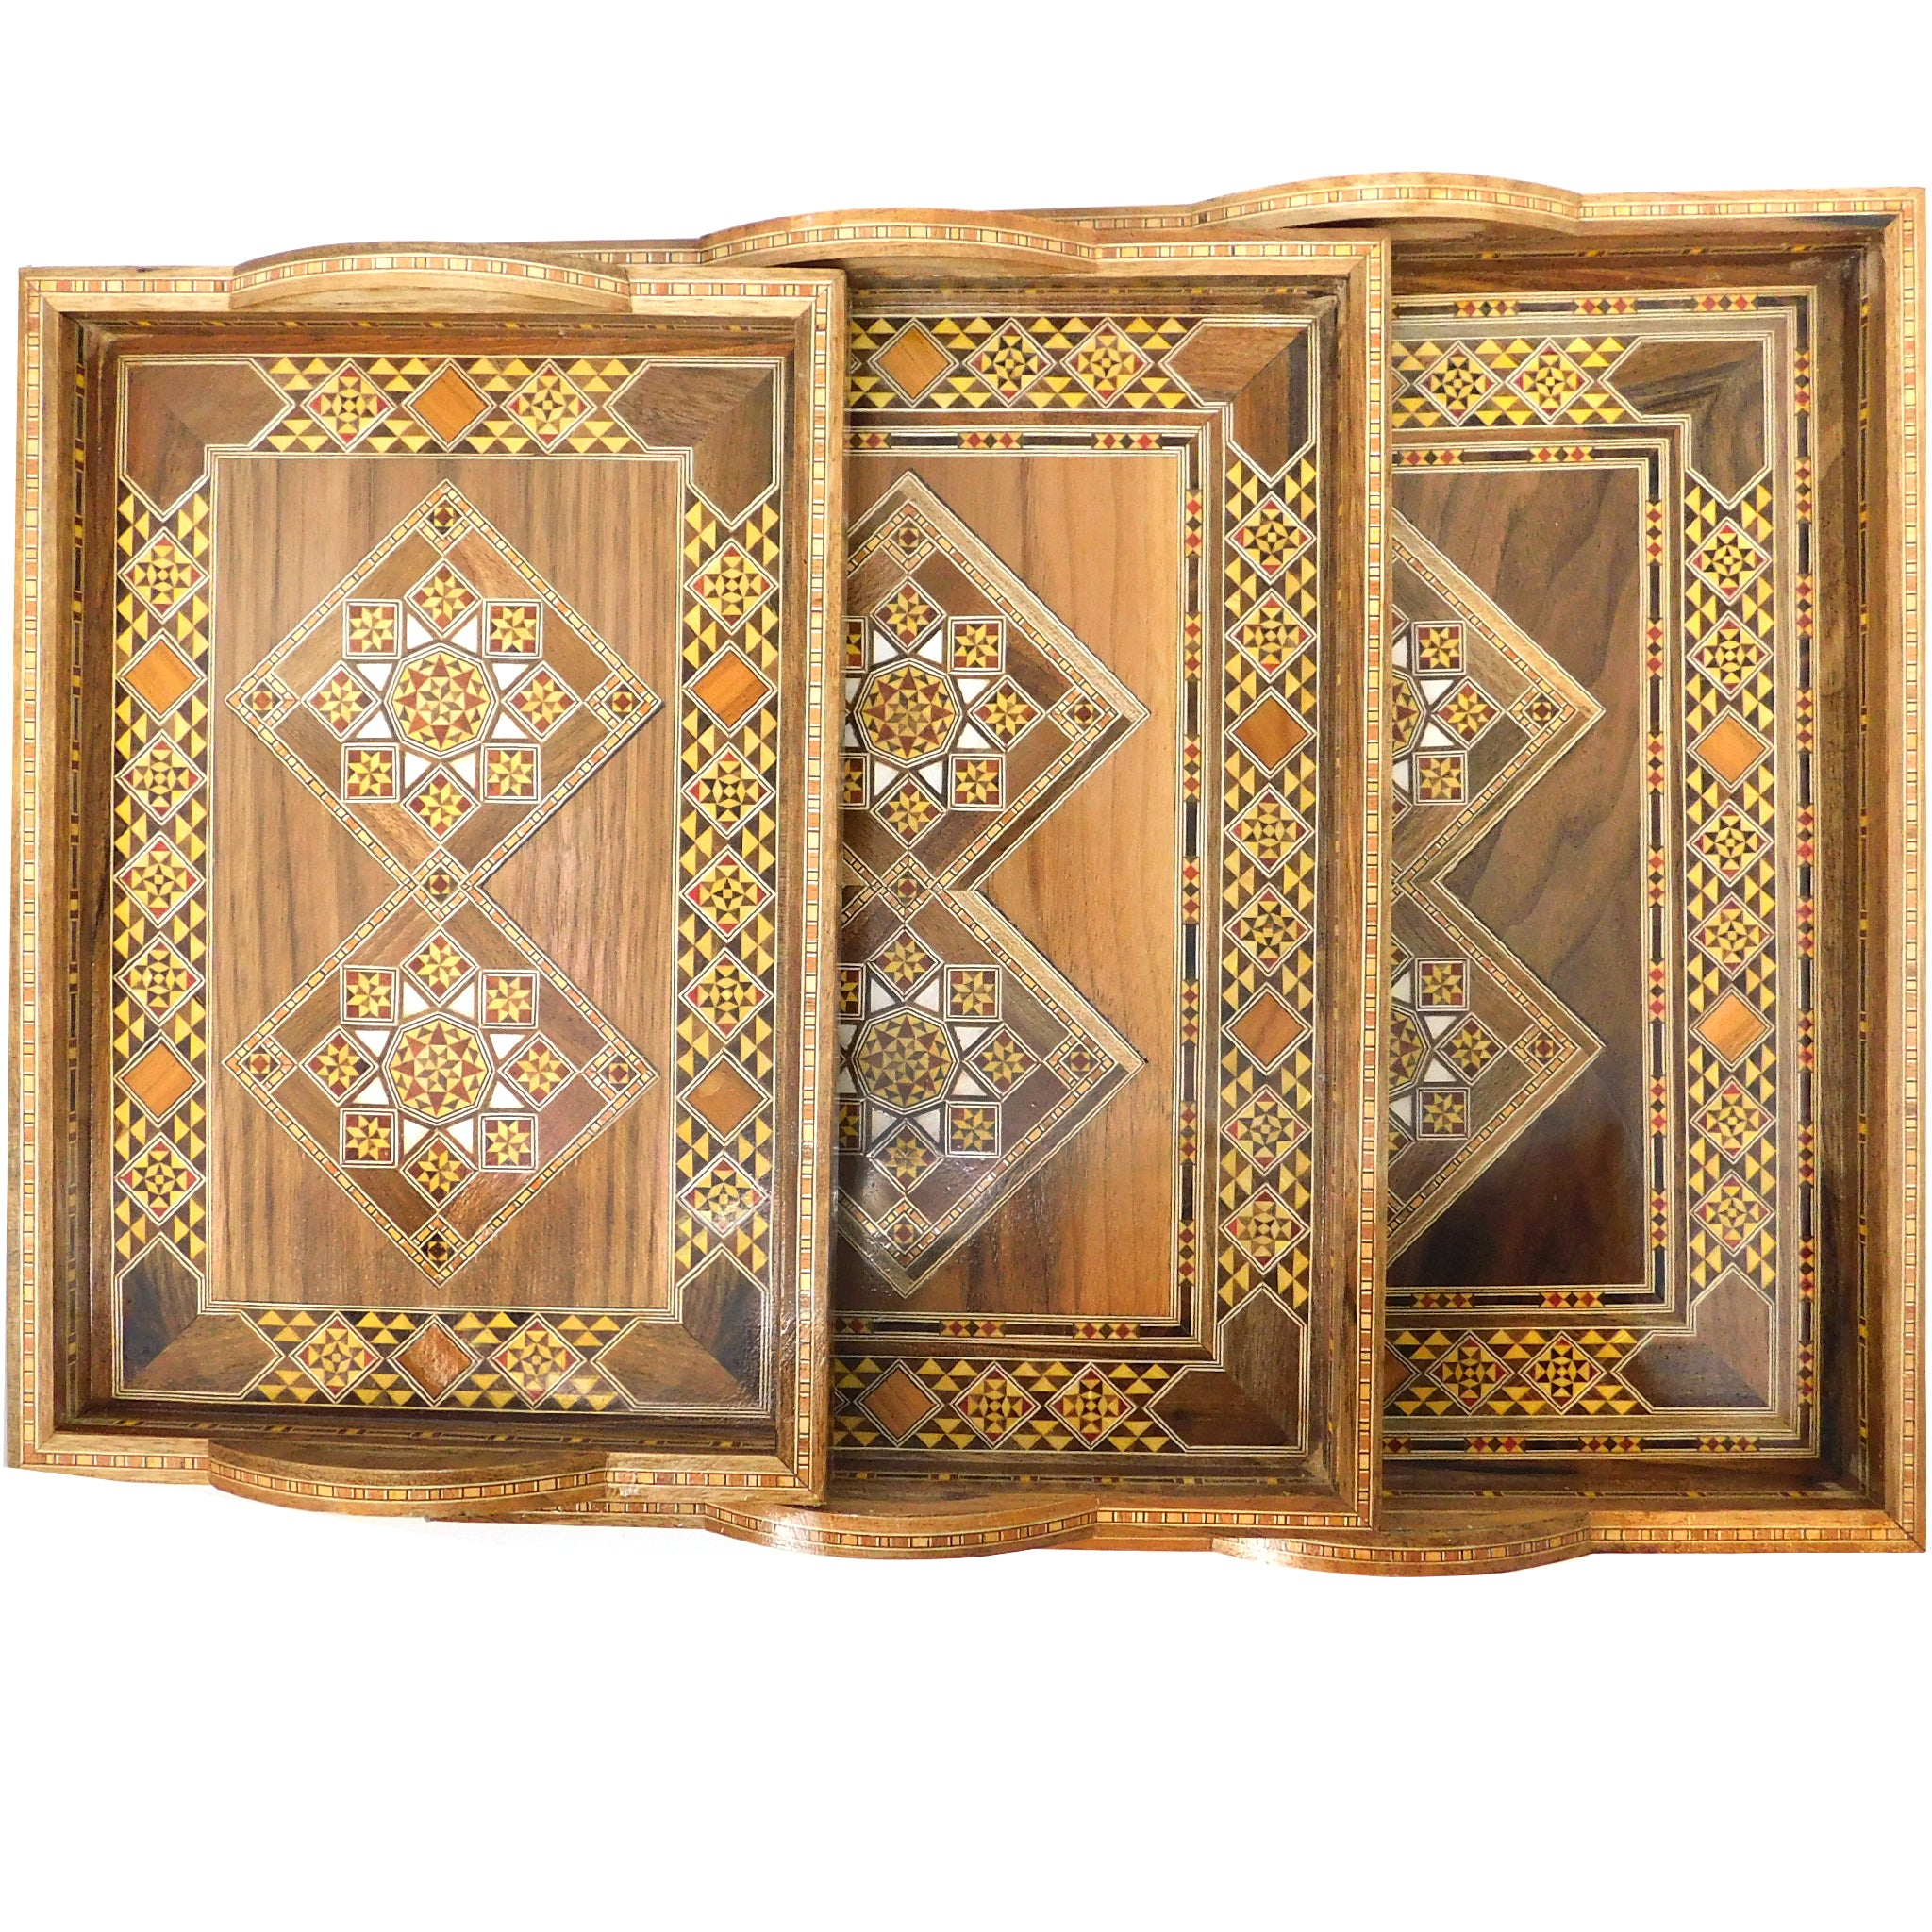 Wooden Mosaic Mother Of Pearl Serving Trays Set Of 3 طقم صواني Zaman Market